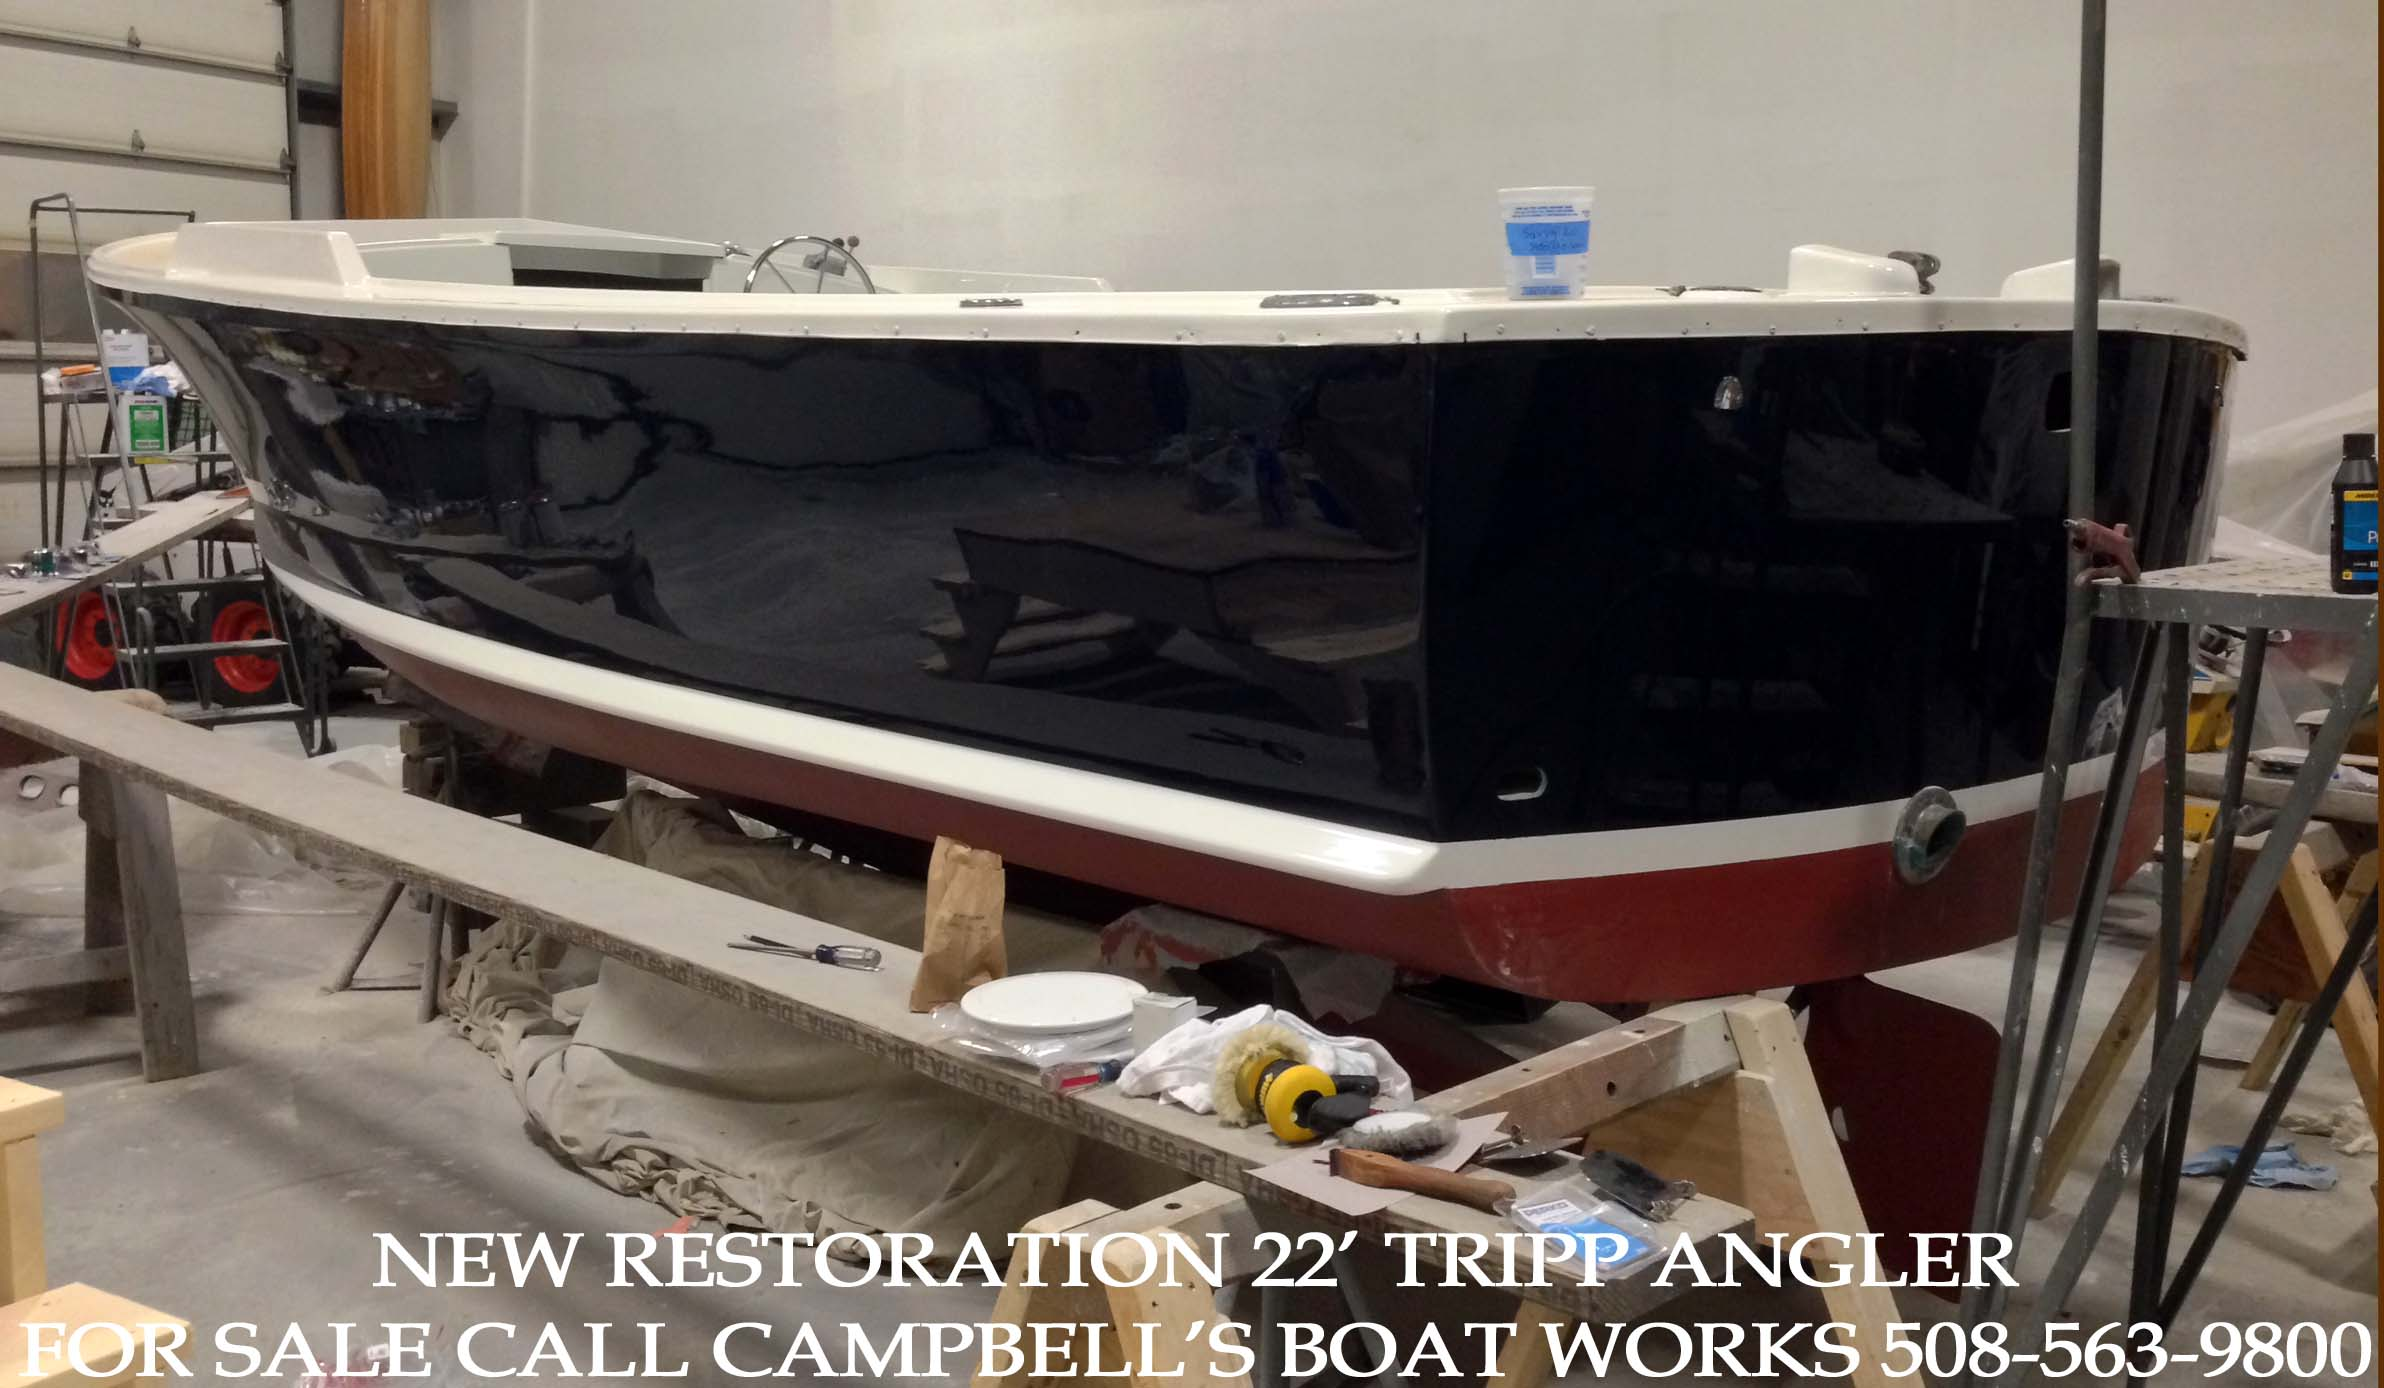 Downeast Bass Boat For Sale 22' Tripp Angler 2014